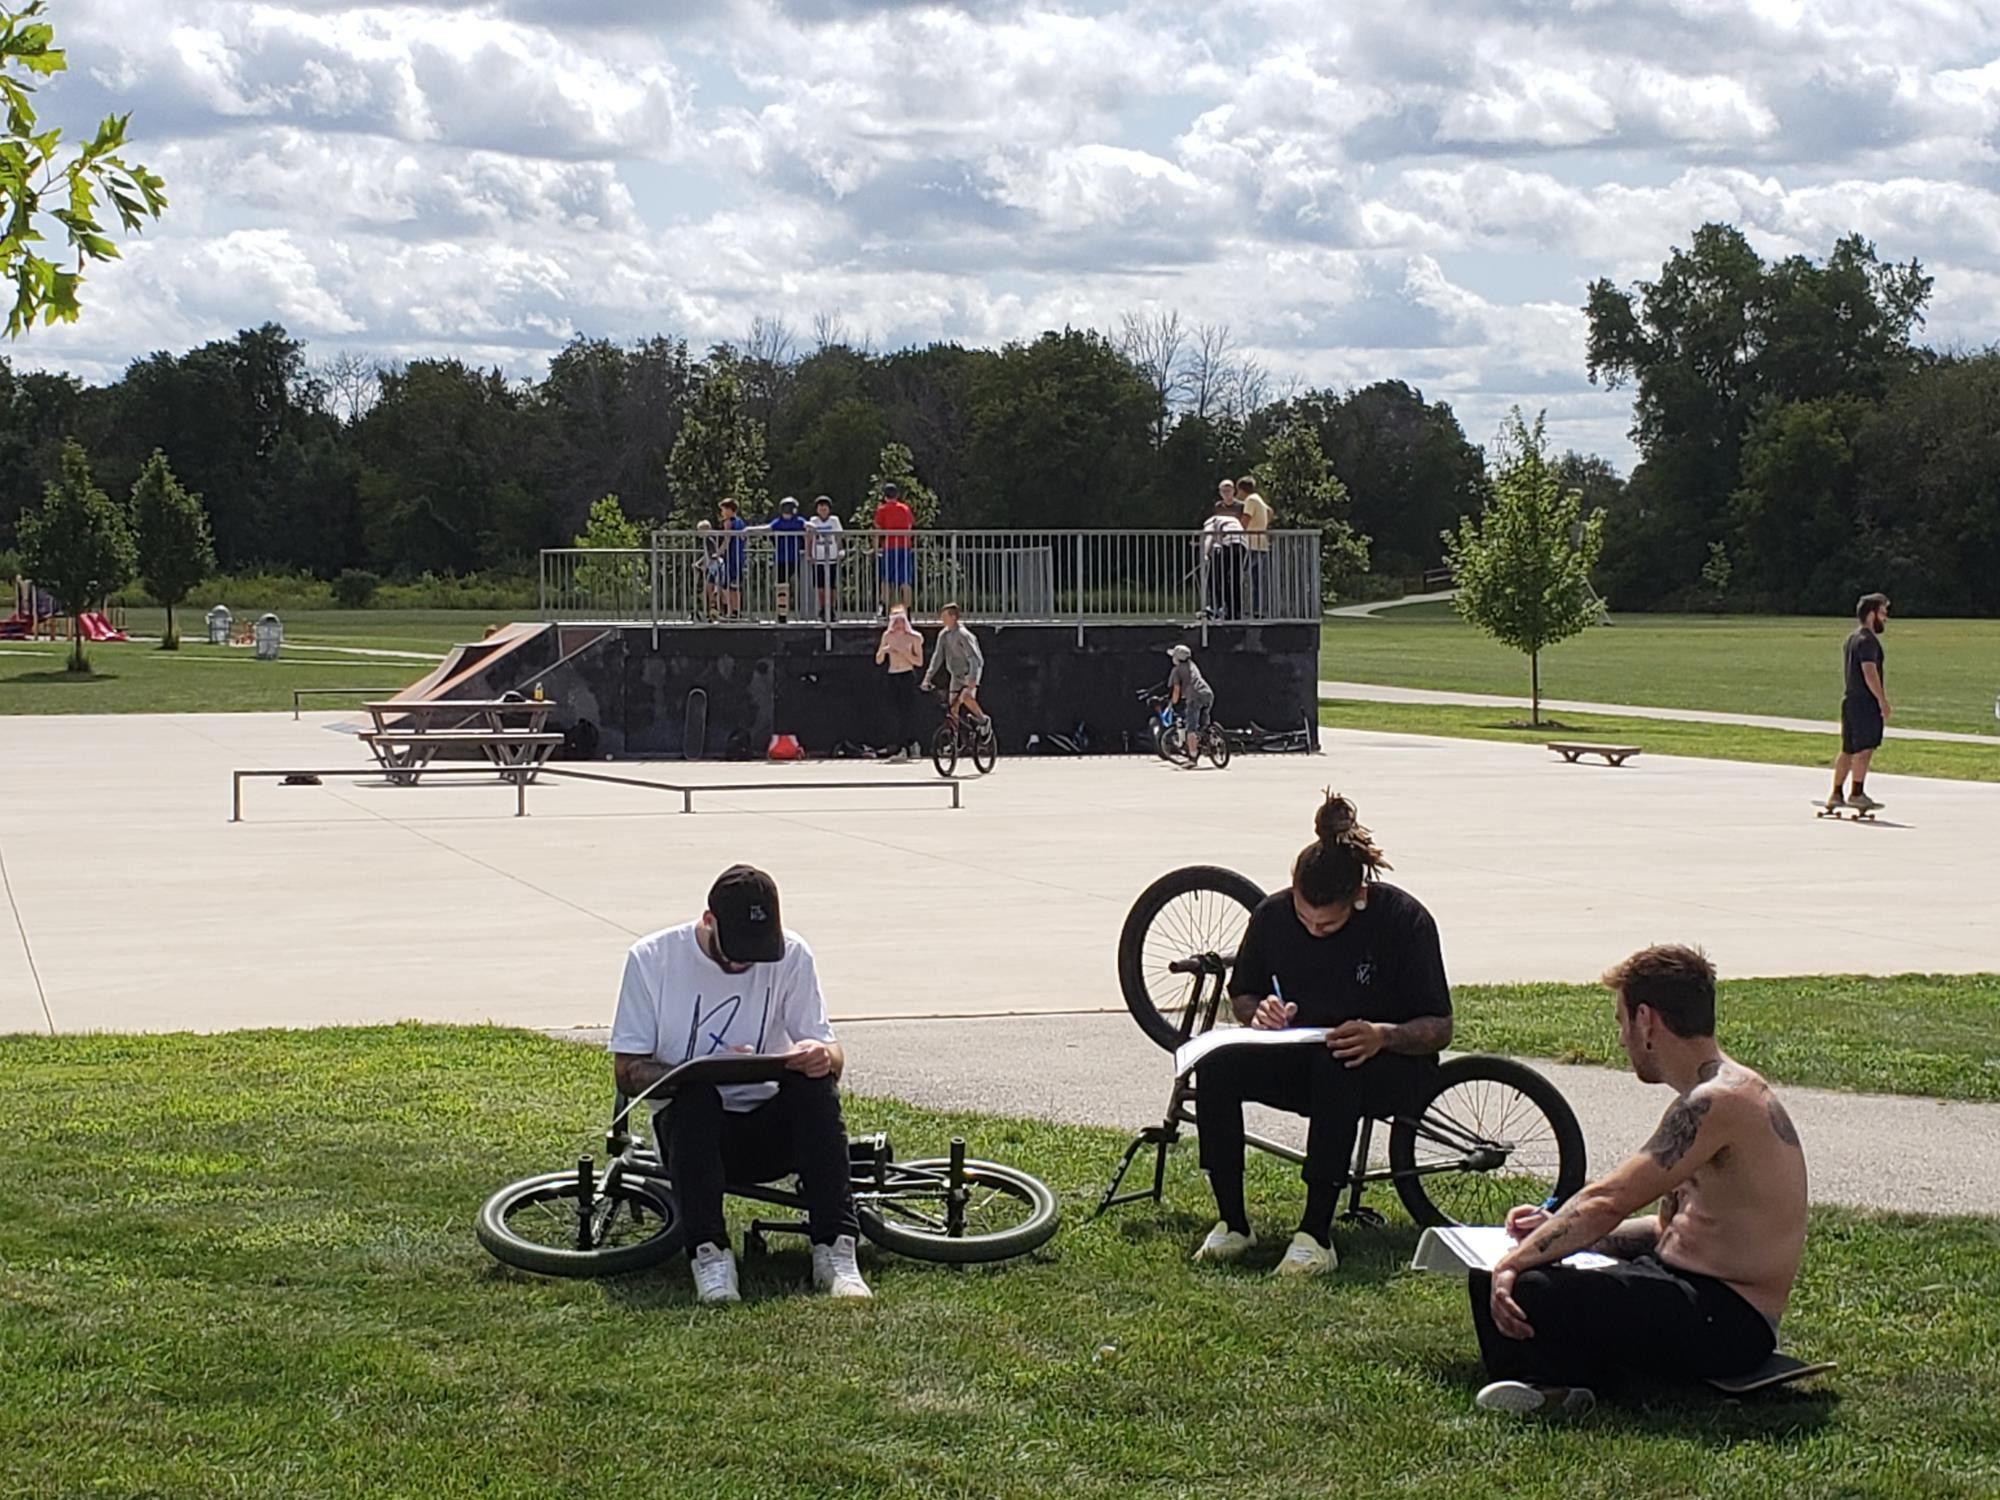 People participating in the Skate Park Design Workshop at Abendschein Park